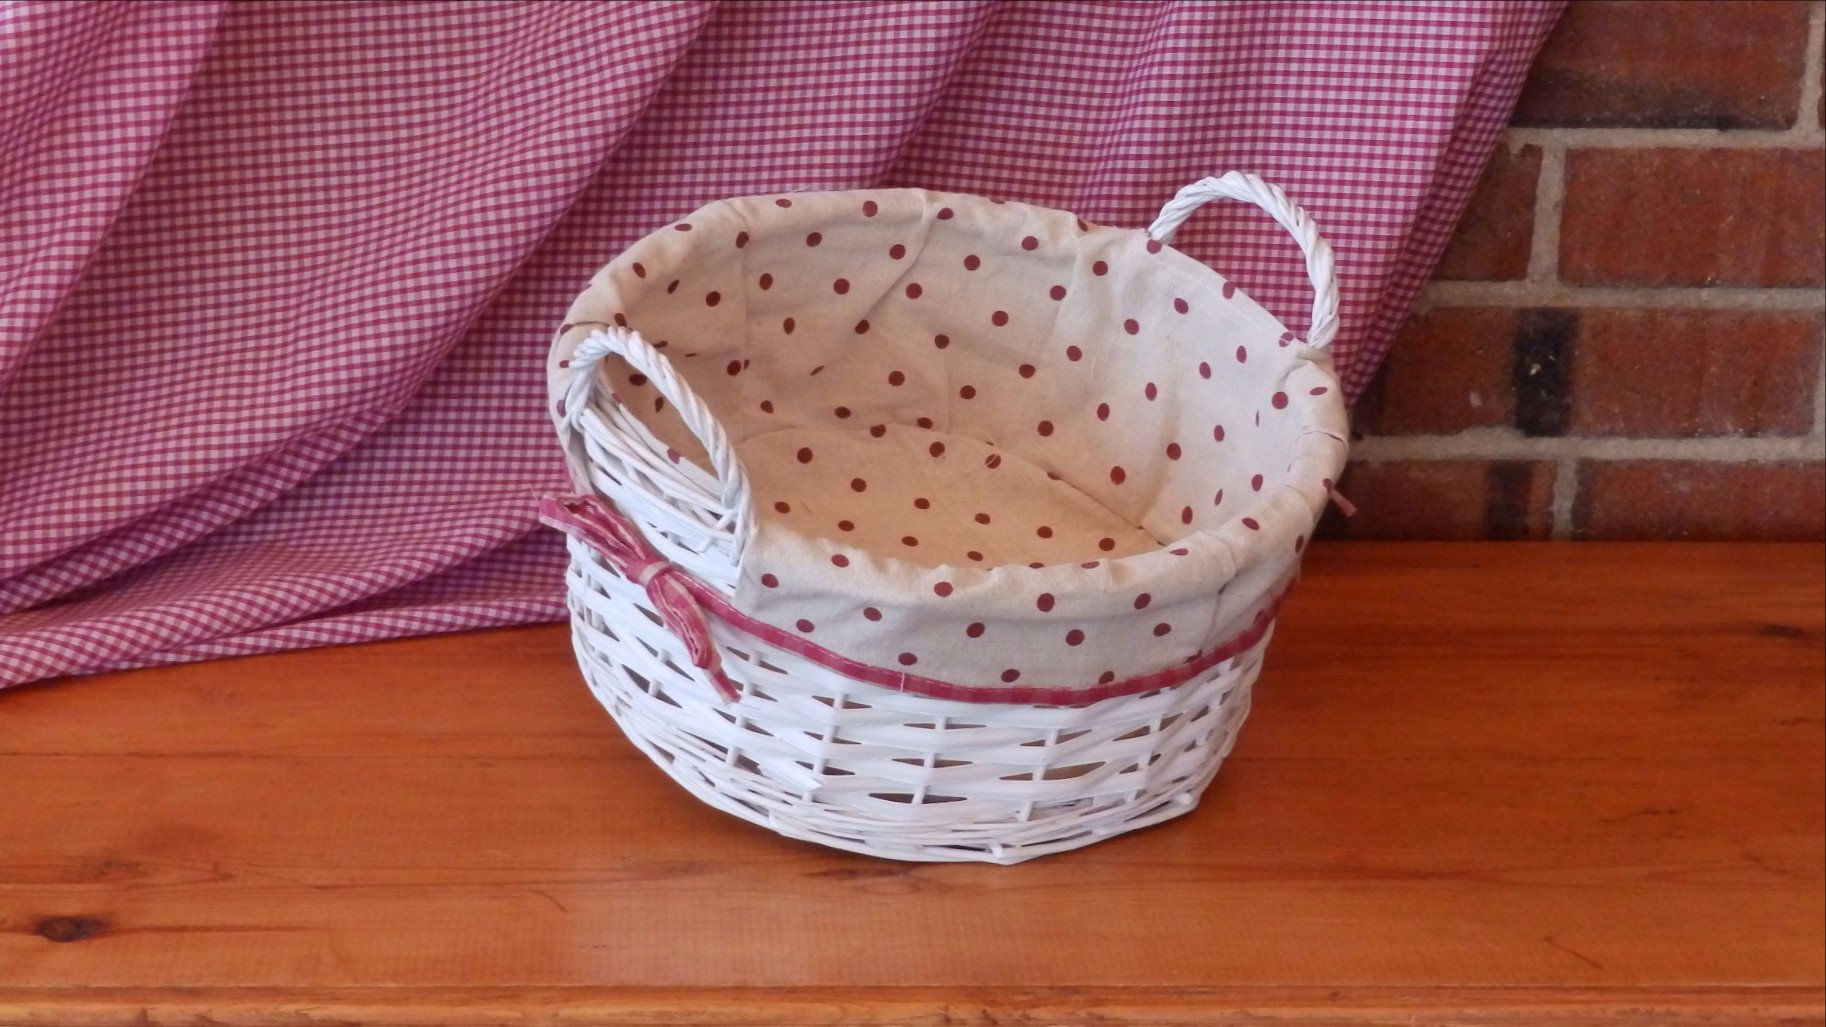 Medium White Wicker Basket with Polka Dot Lining